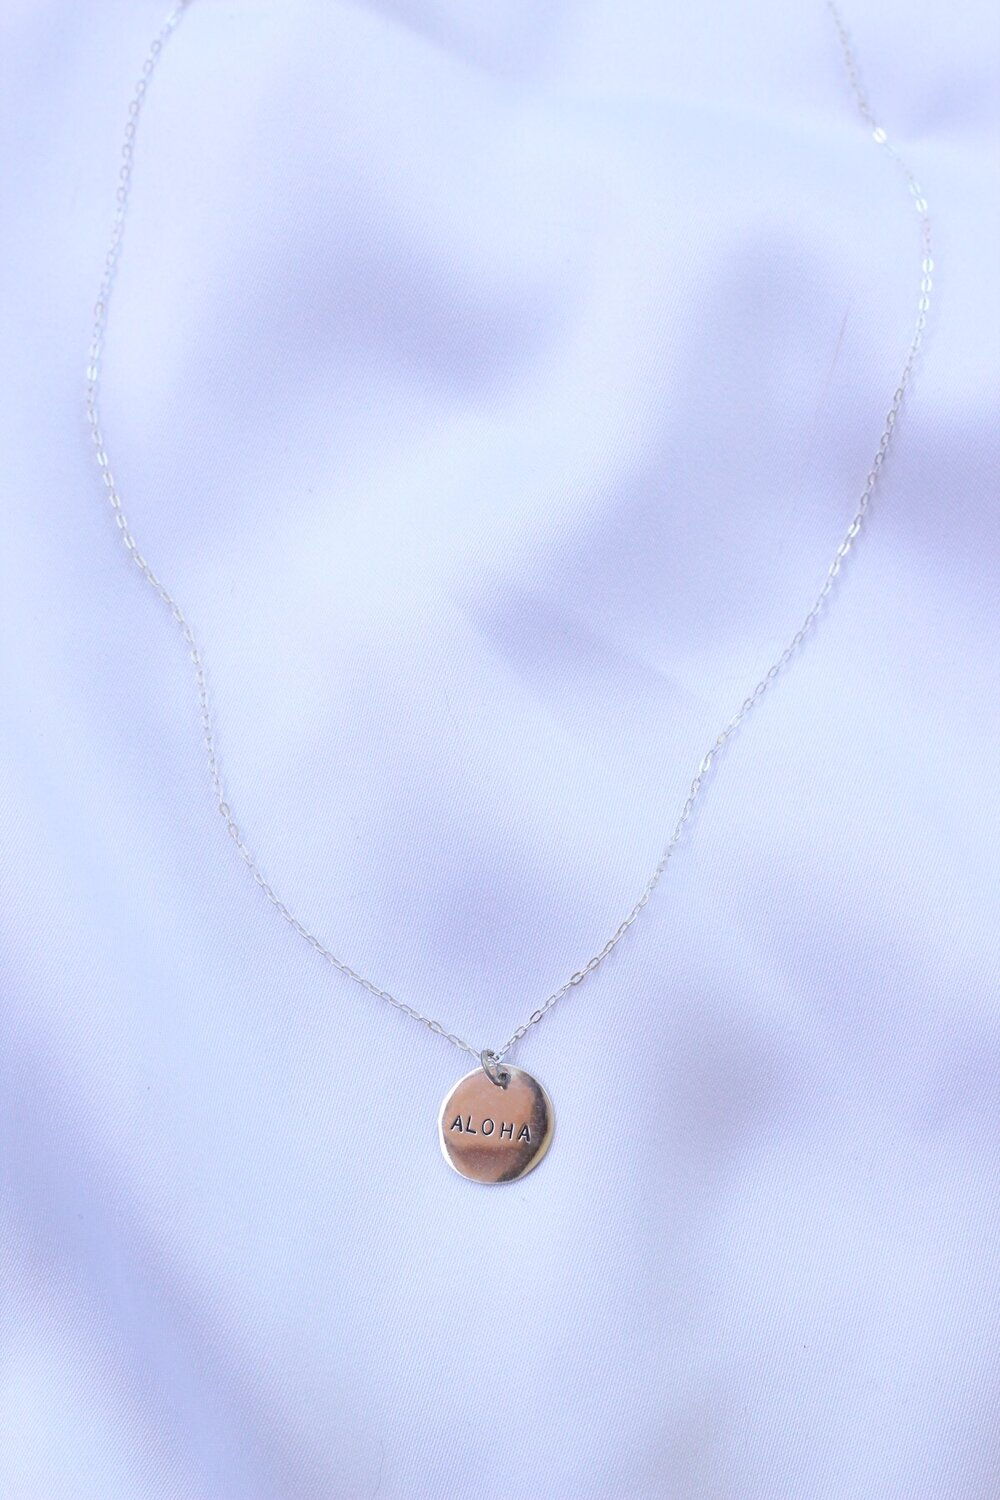 Stamped Aloha necklace